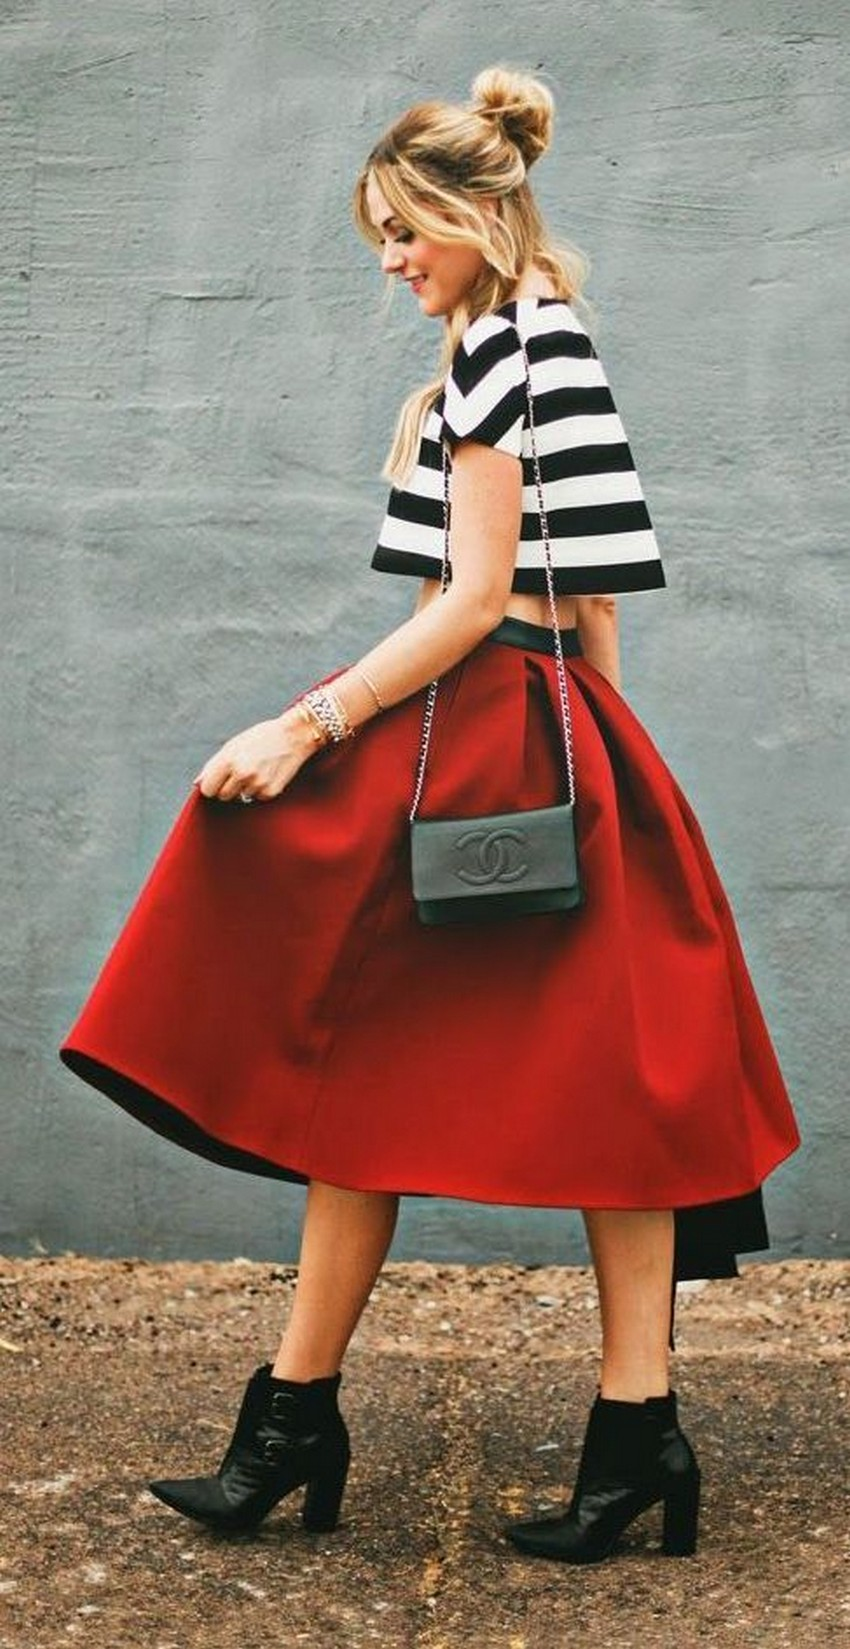 9. Midi skirt | Winter Fashion Trends 2016 | Image Source: http://whowhatwear.com